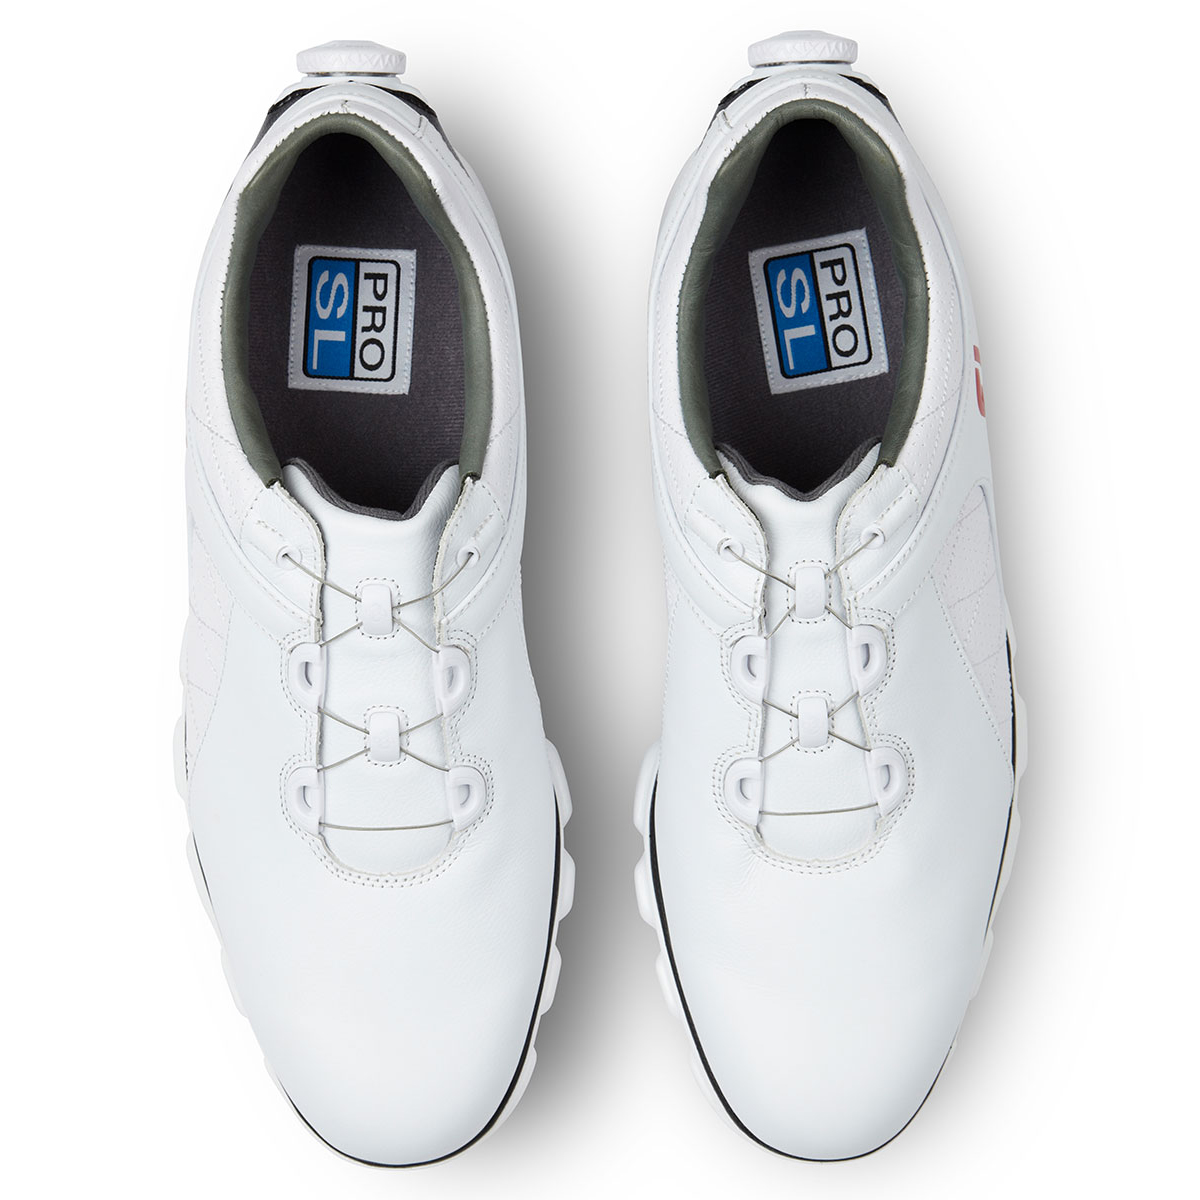 Footjoy Boa Shoes Uk